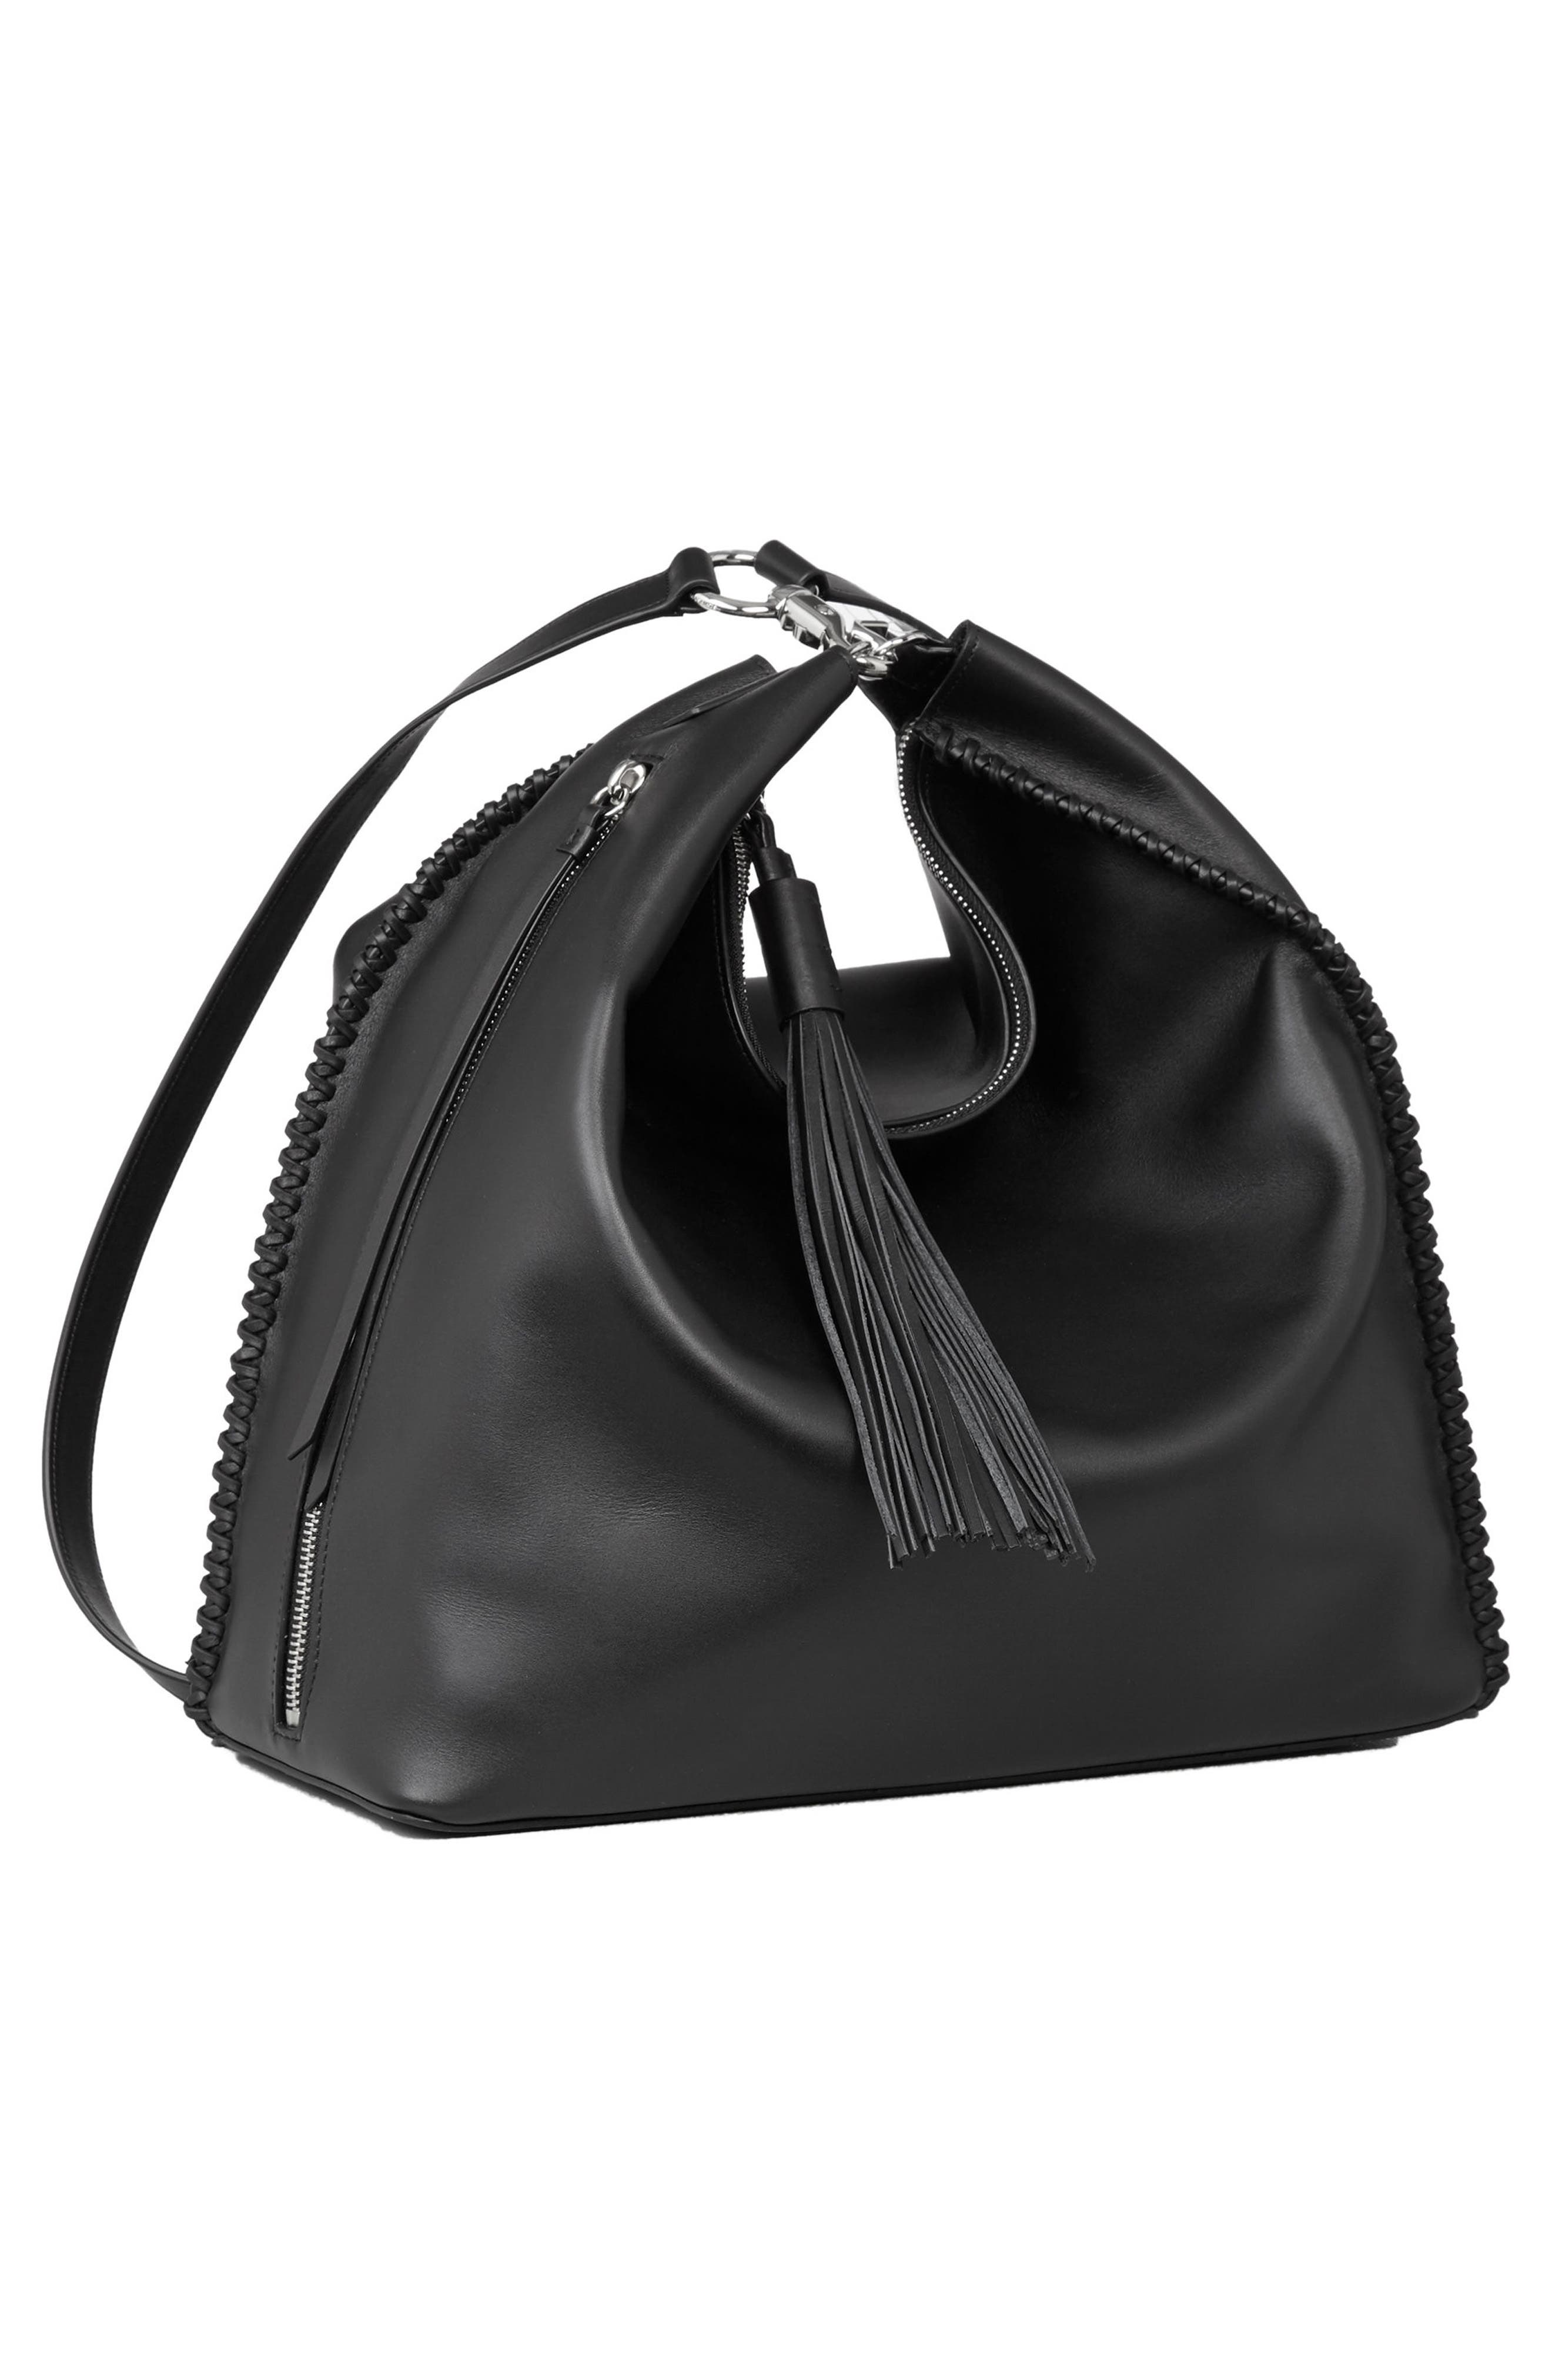 Pearl Convertible Leather Backpack,                             Alternate thumbnail 9, color,                             Black